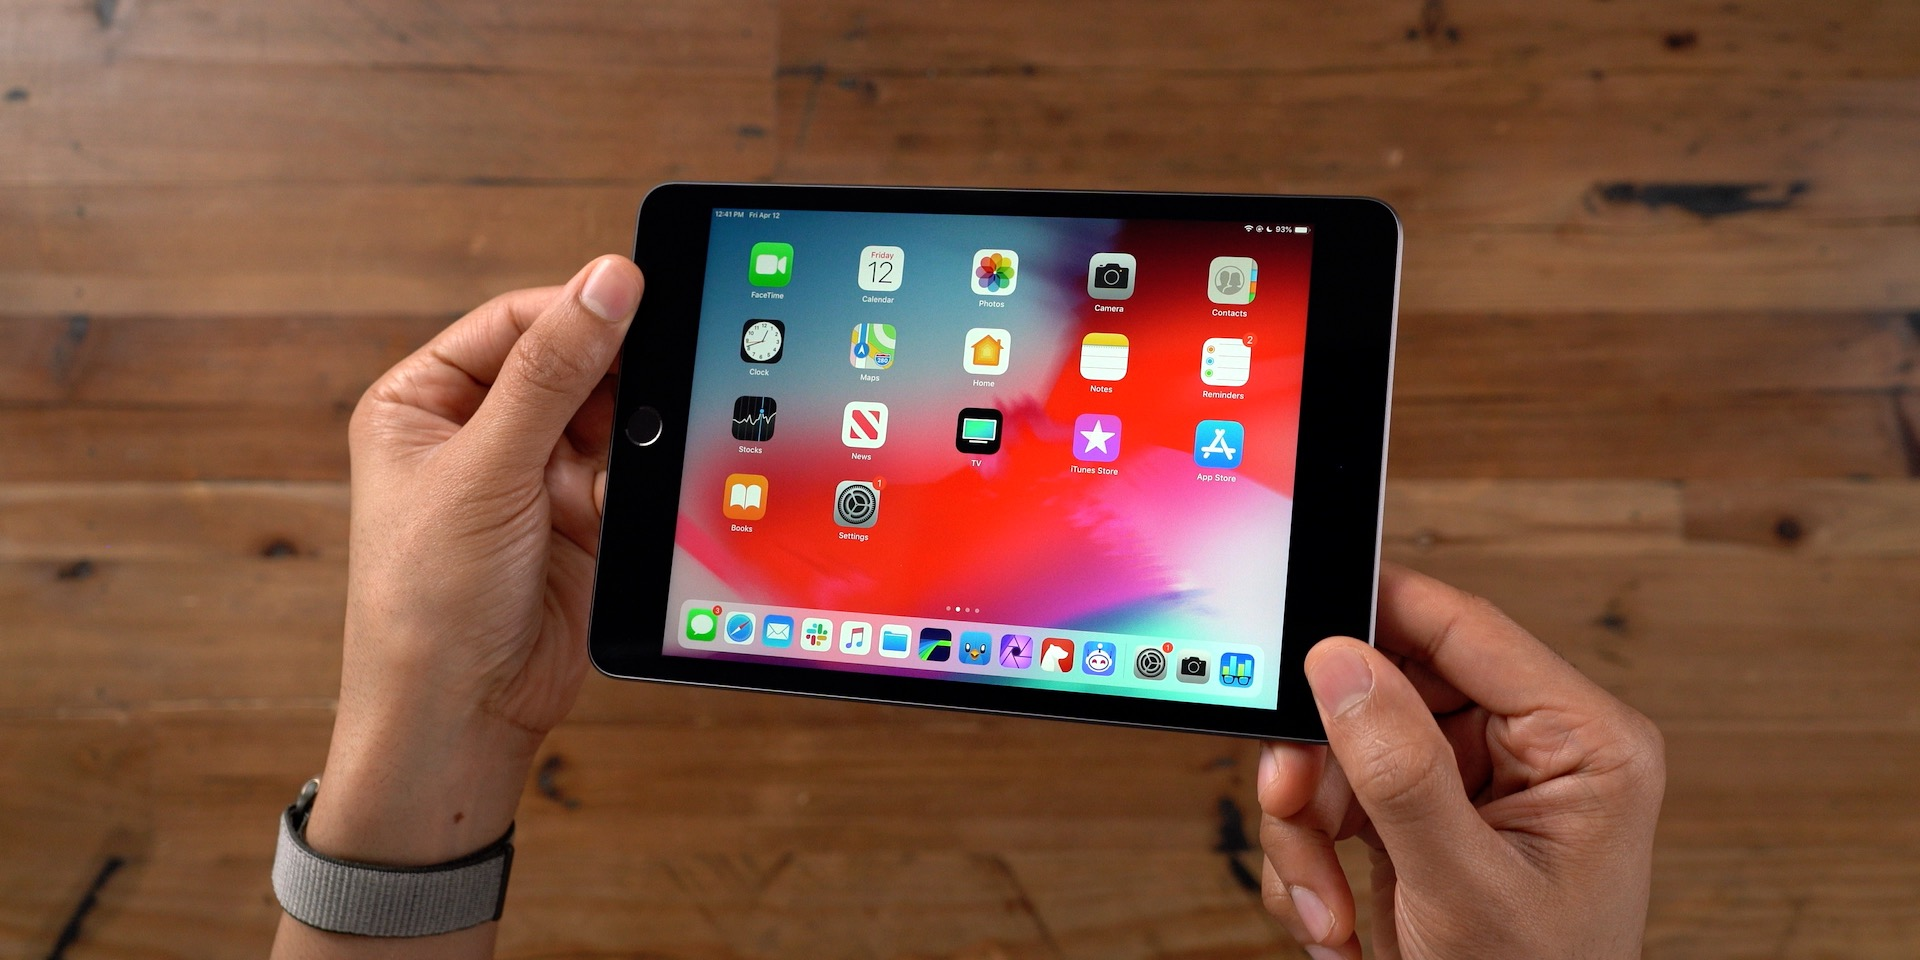 iPad mini 5 review: when portability is what's most important - 9to5Mac